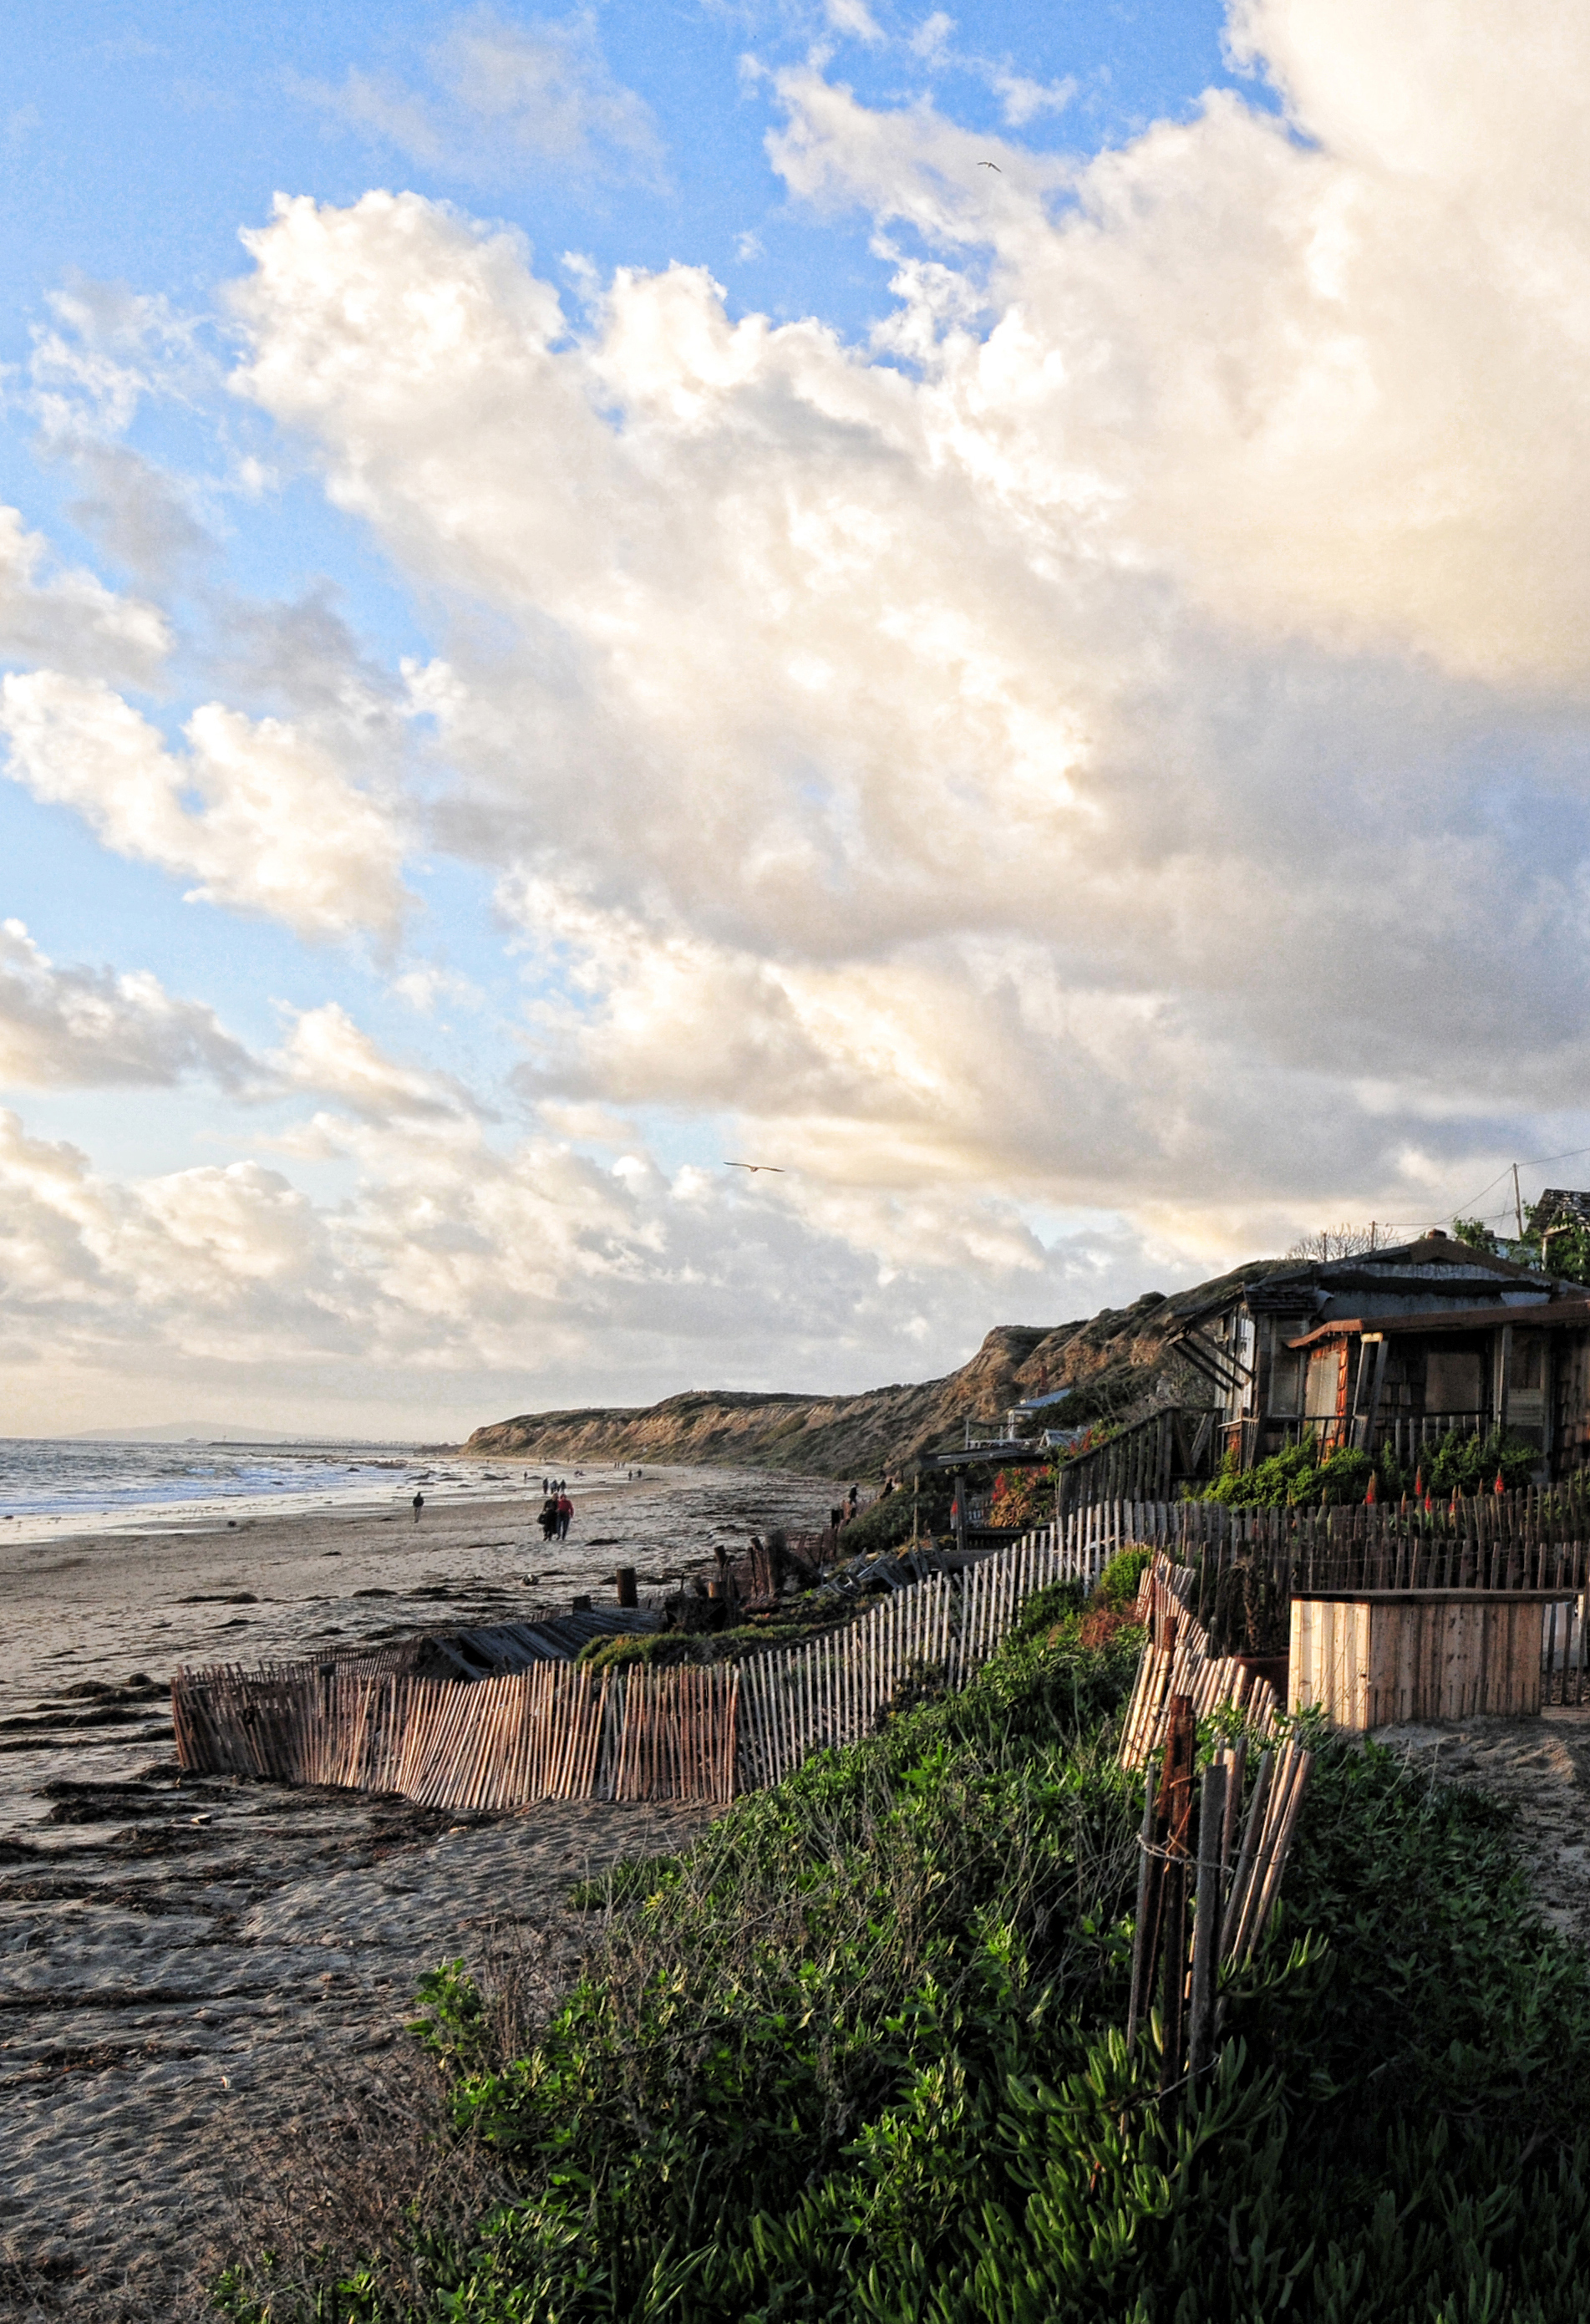 Crystal cove picket fence*.jpg